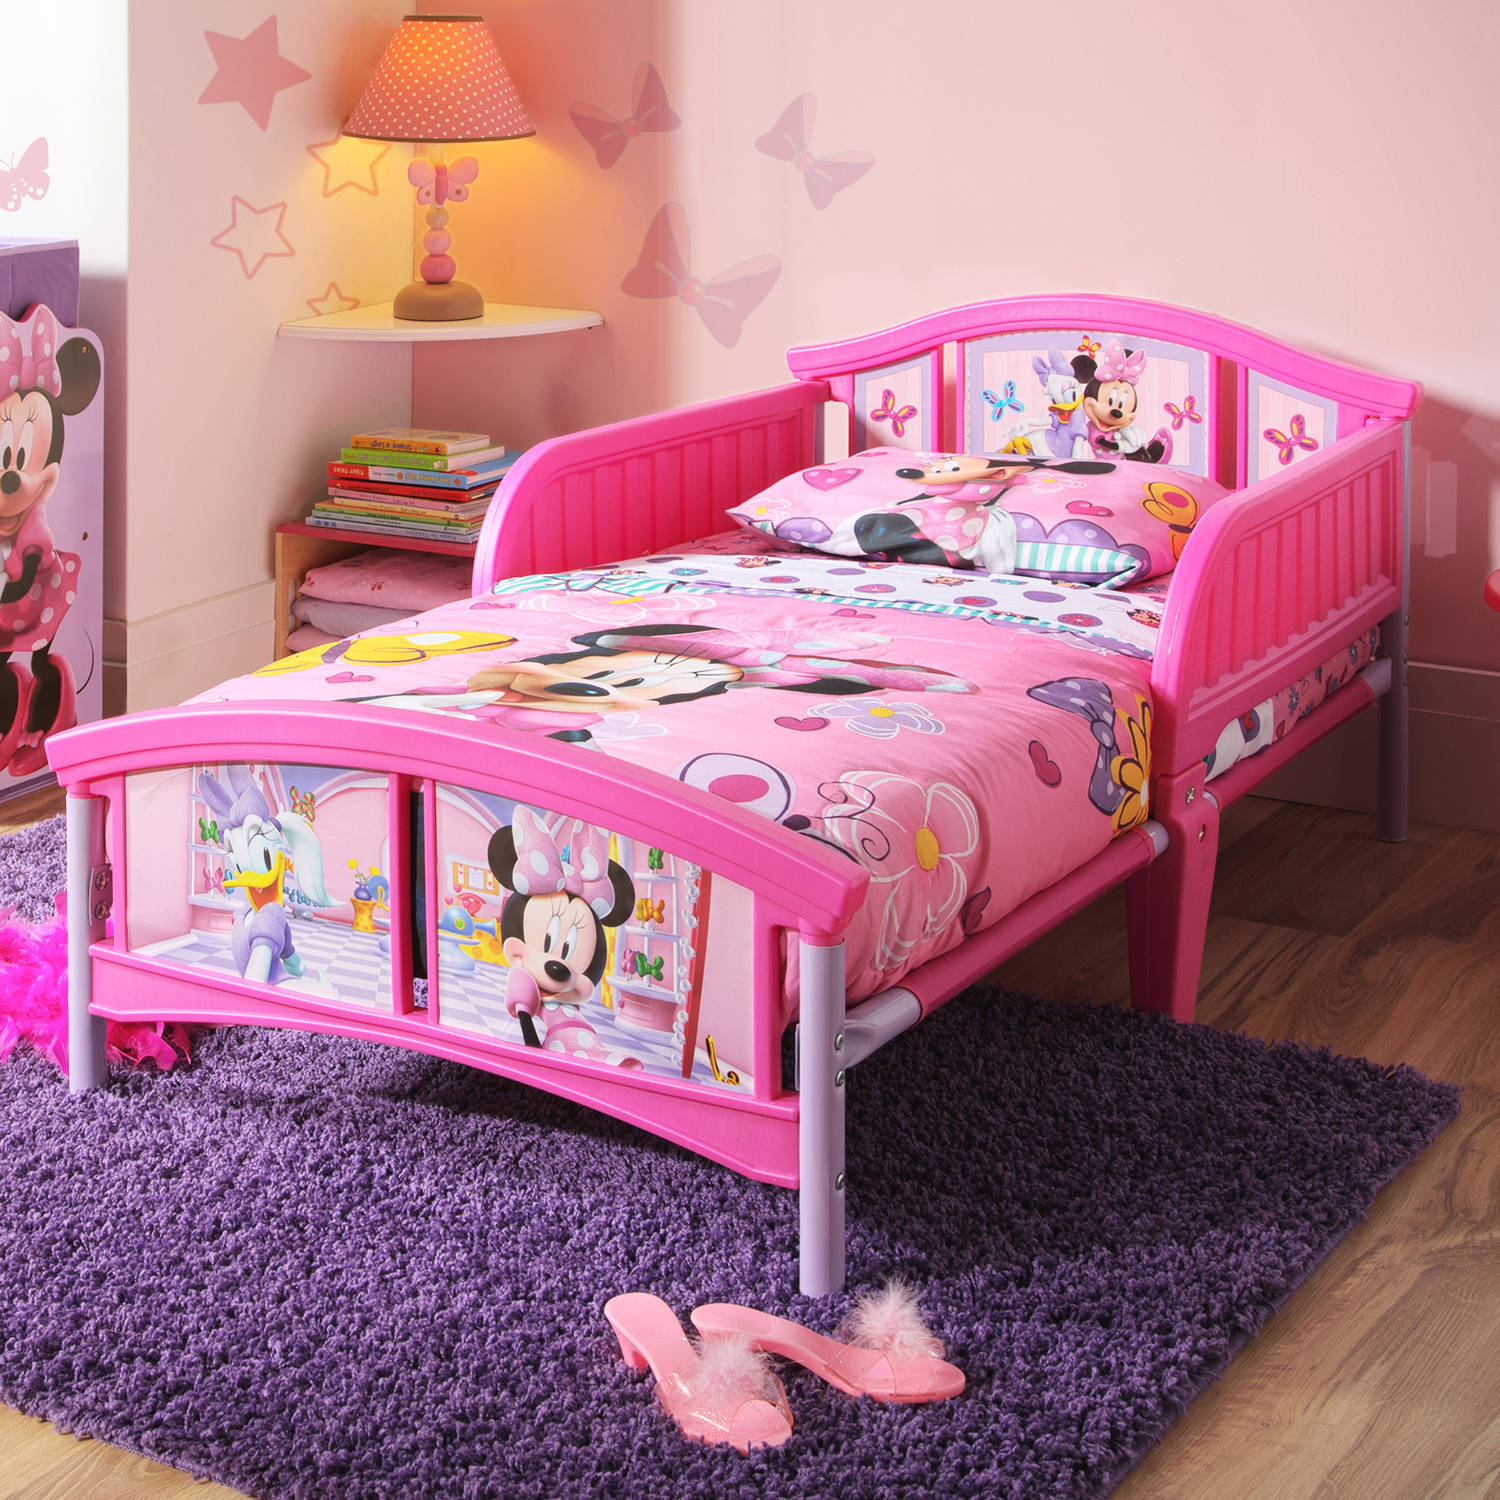 Disney Minnie Mouse Playroom Solution   Walmart.com